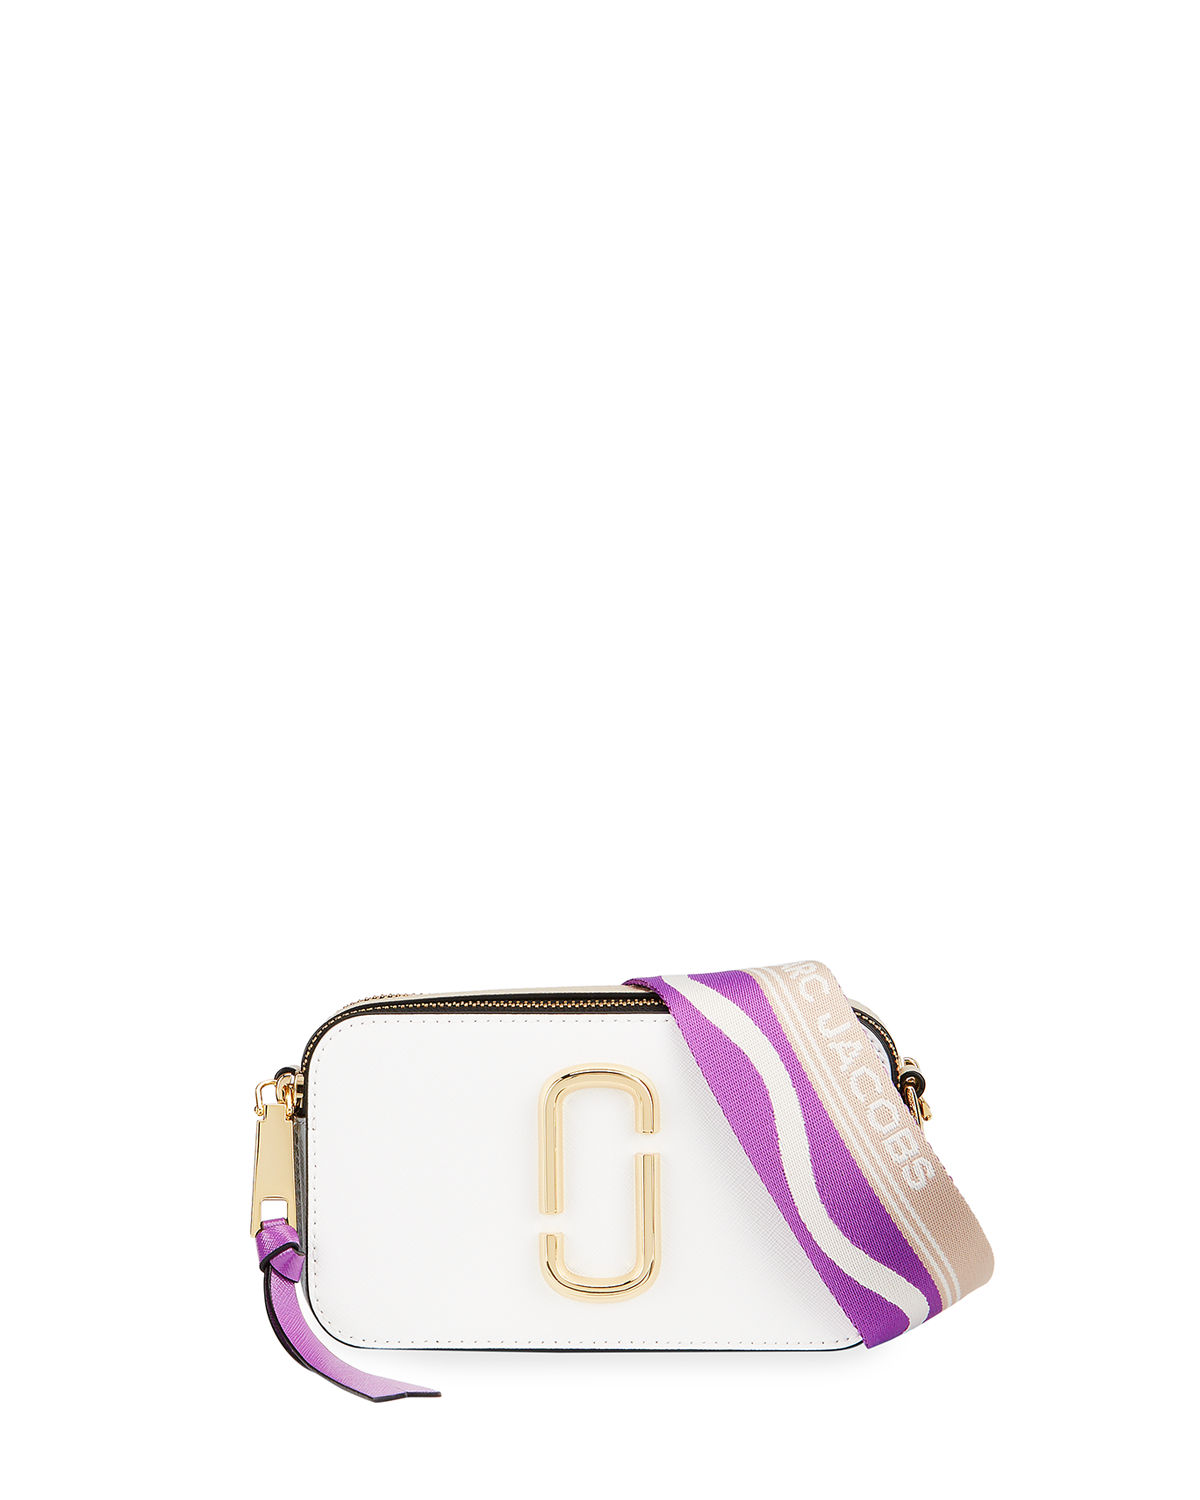 The Marc Jacobs Leathers SNAPSHOT COLORBLOCK CAMERA BAG